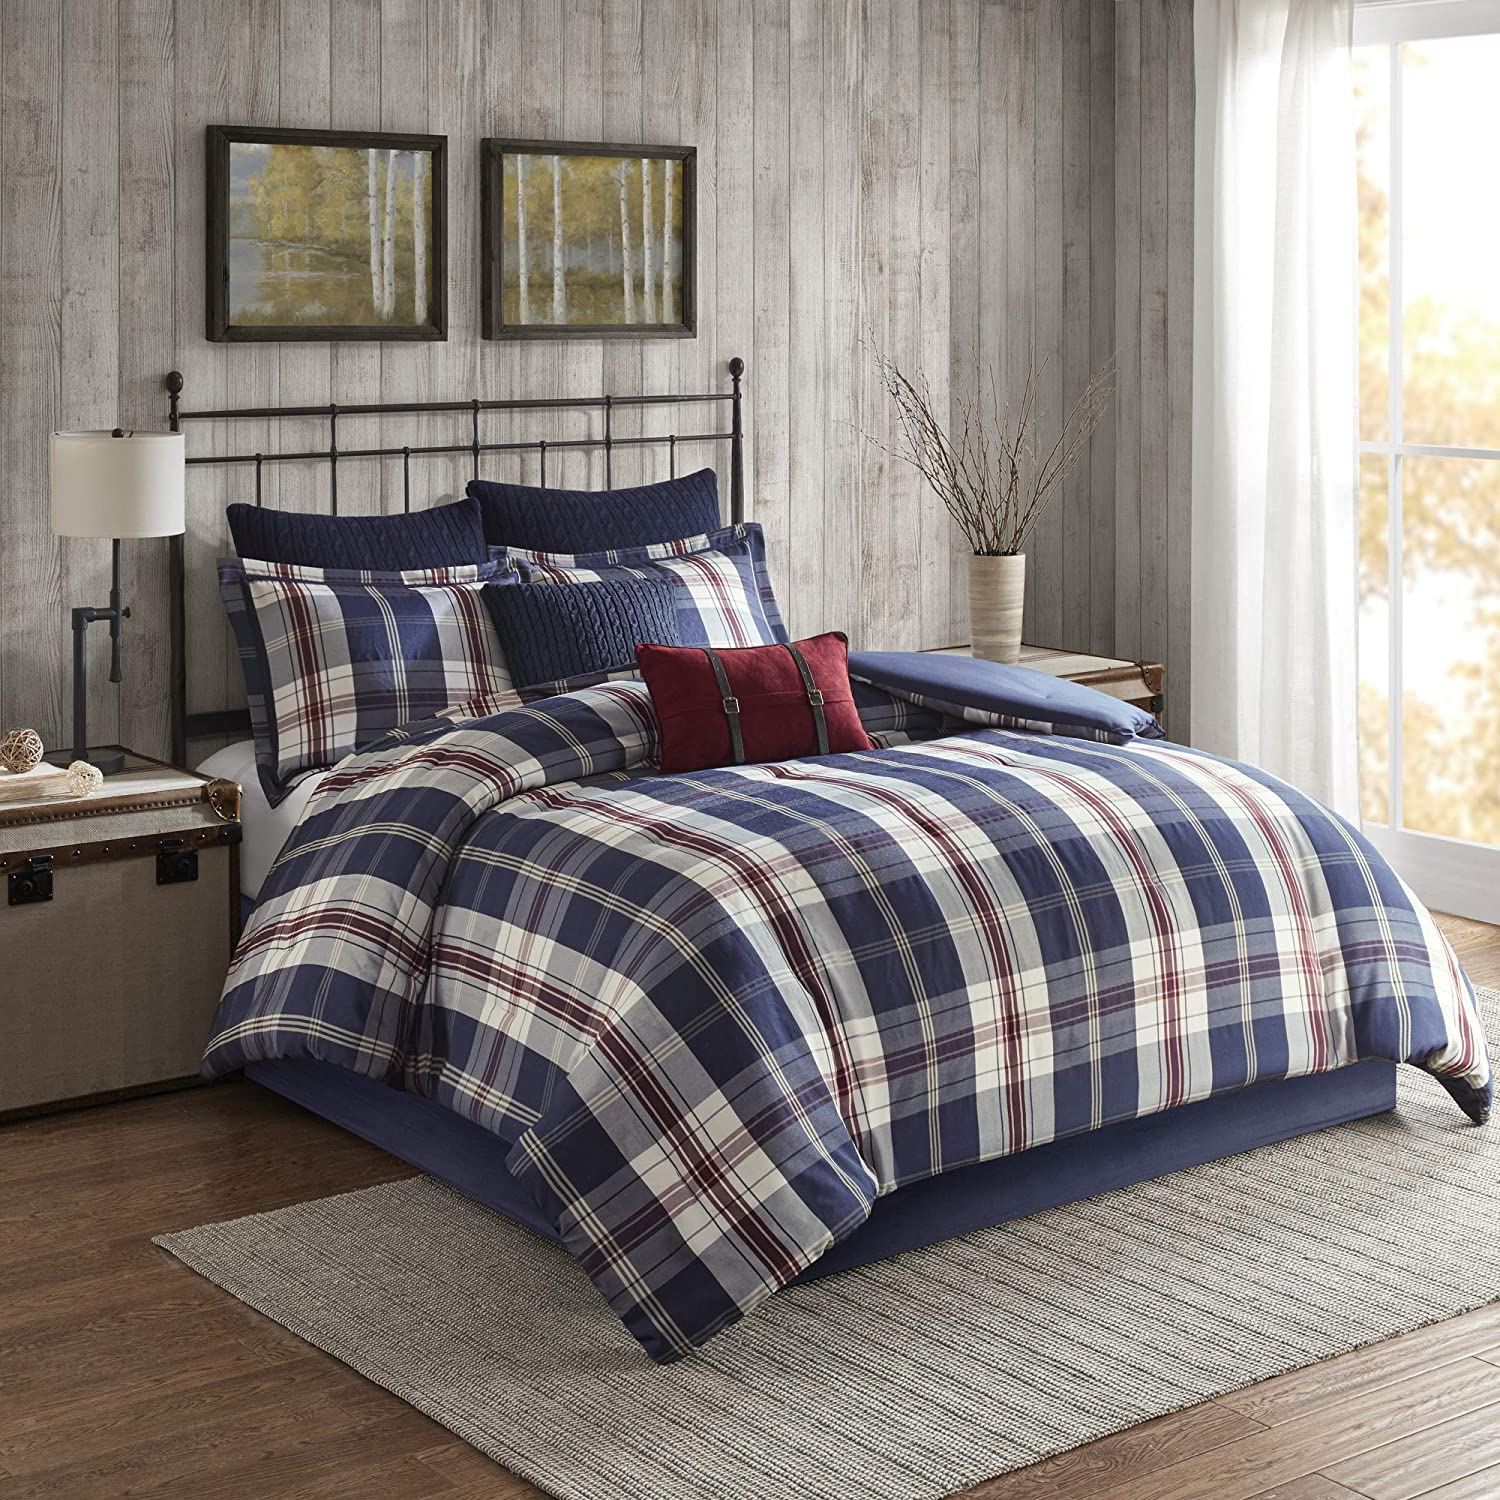 Woolrich Comforter Reversible Oversized Jacquard Check Plaid Cabin Lodge Rustic Printed Modern Ultra Soft Down Alternative Hypoallergenic All Season Bedding-Set, King, Ryland Blue